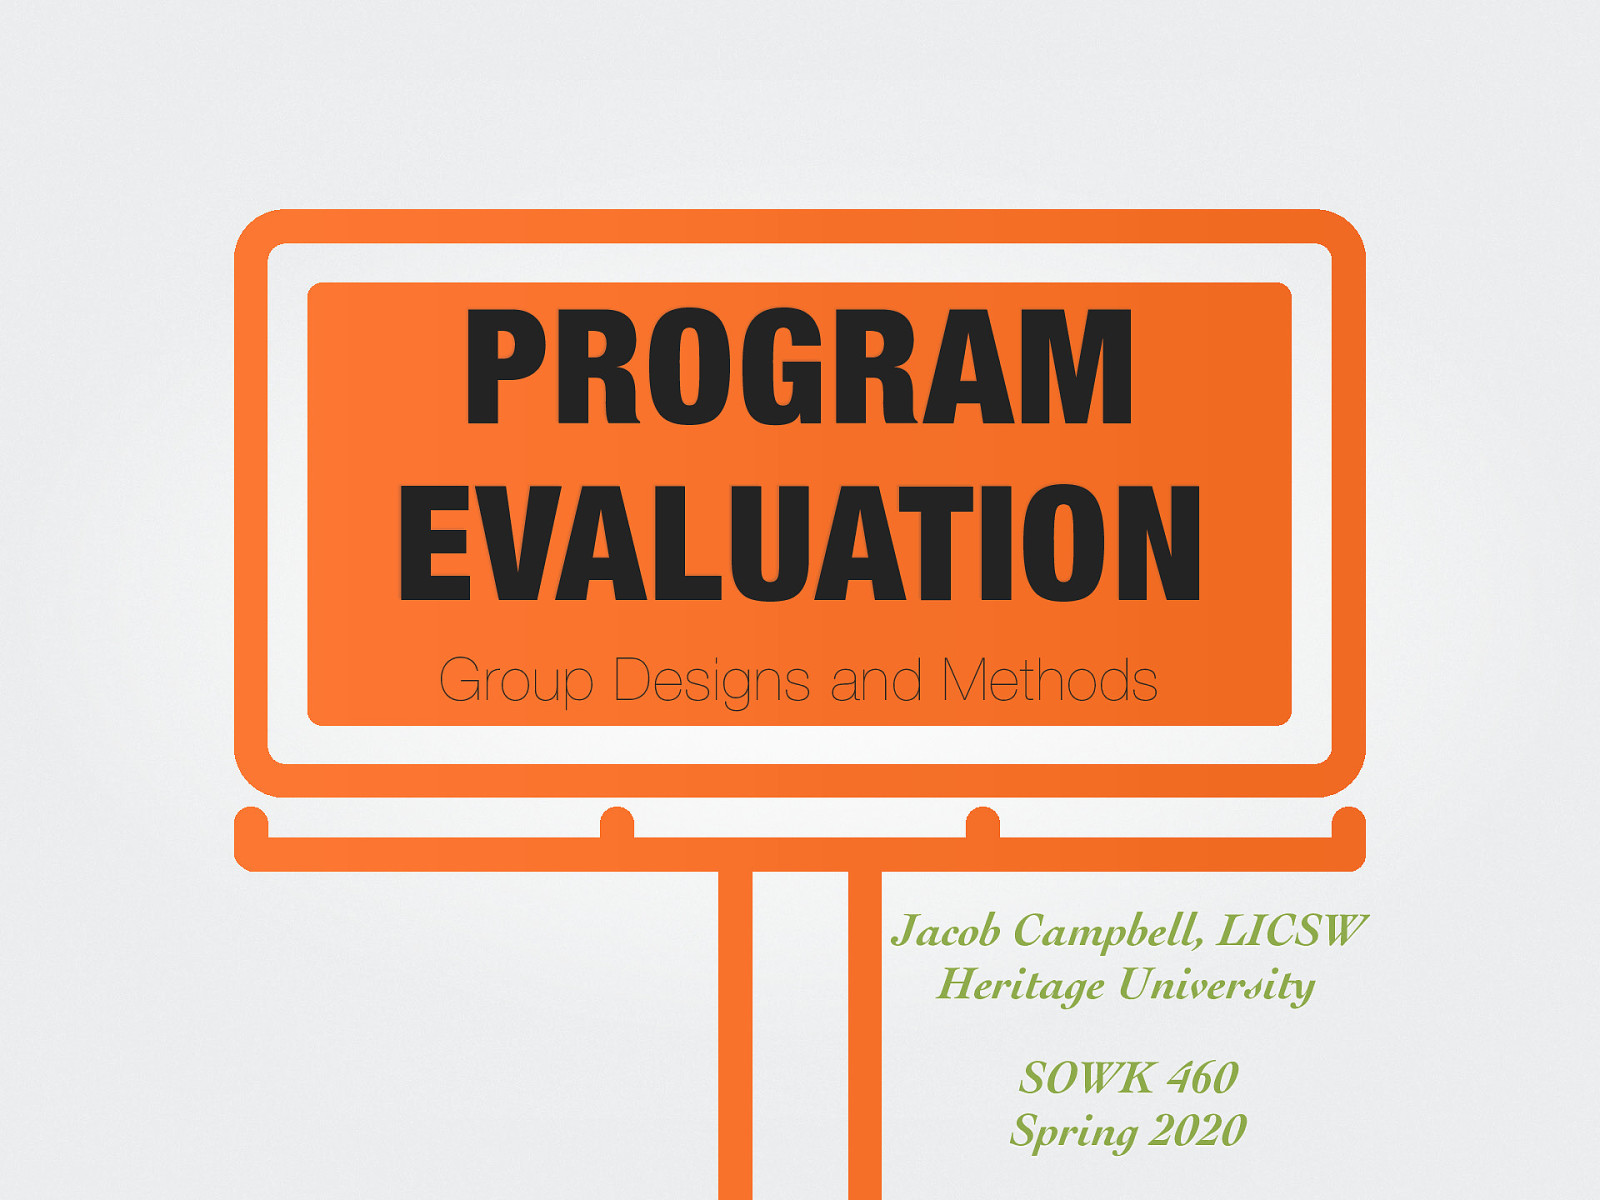 Week 08 - Program Evaluation Group Designs and Methods